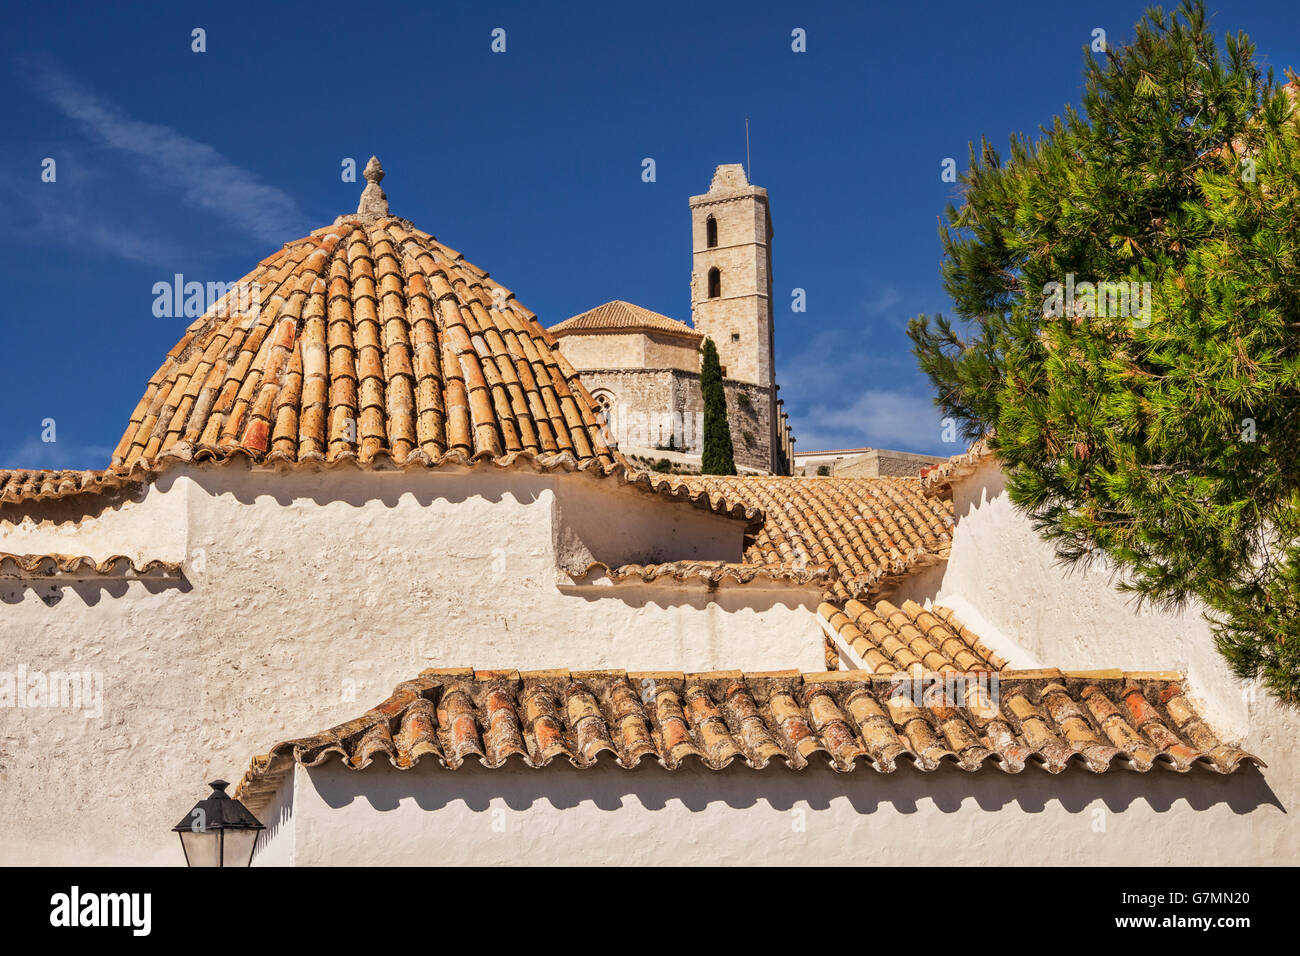 Rooftops of the Dalt Vila, the old part of Ibiza Town, dominated by the Cathedral, Ibiza, Spain. - Stock Image